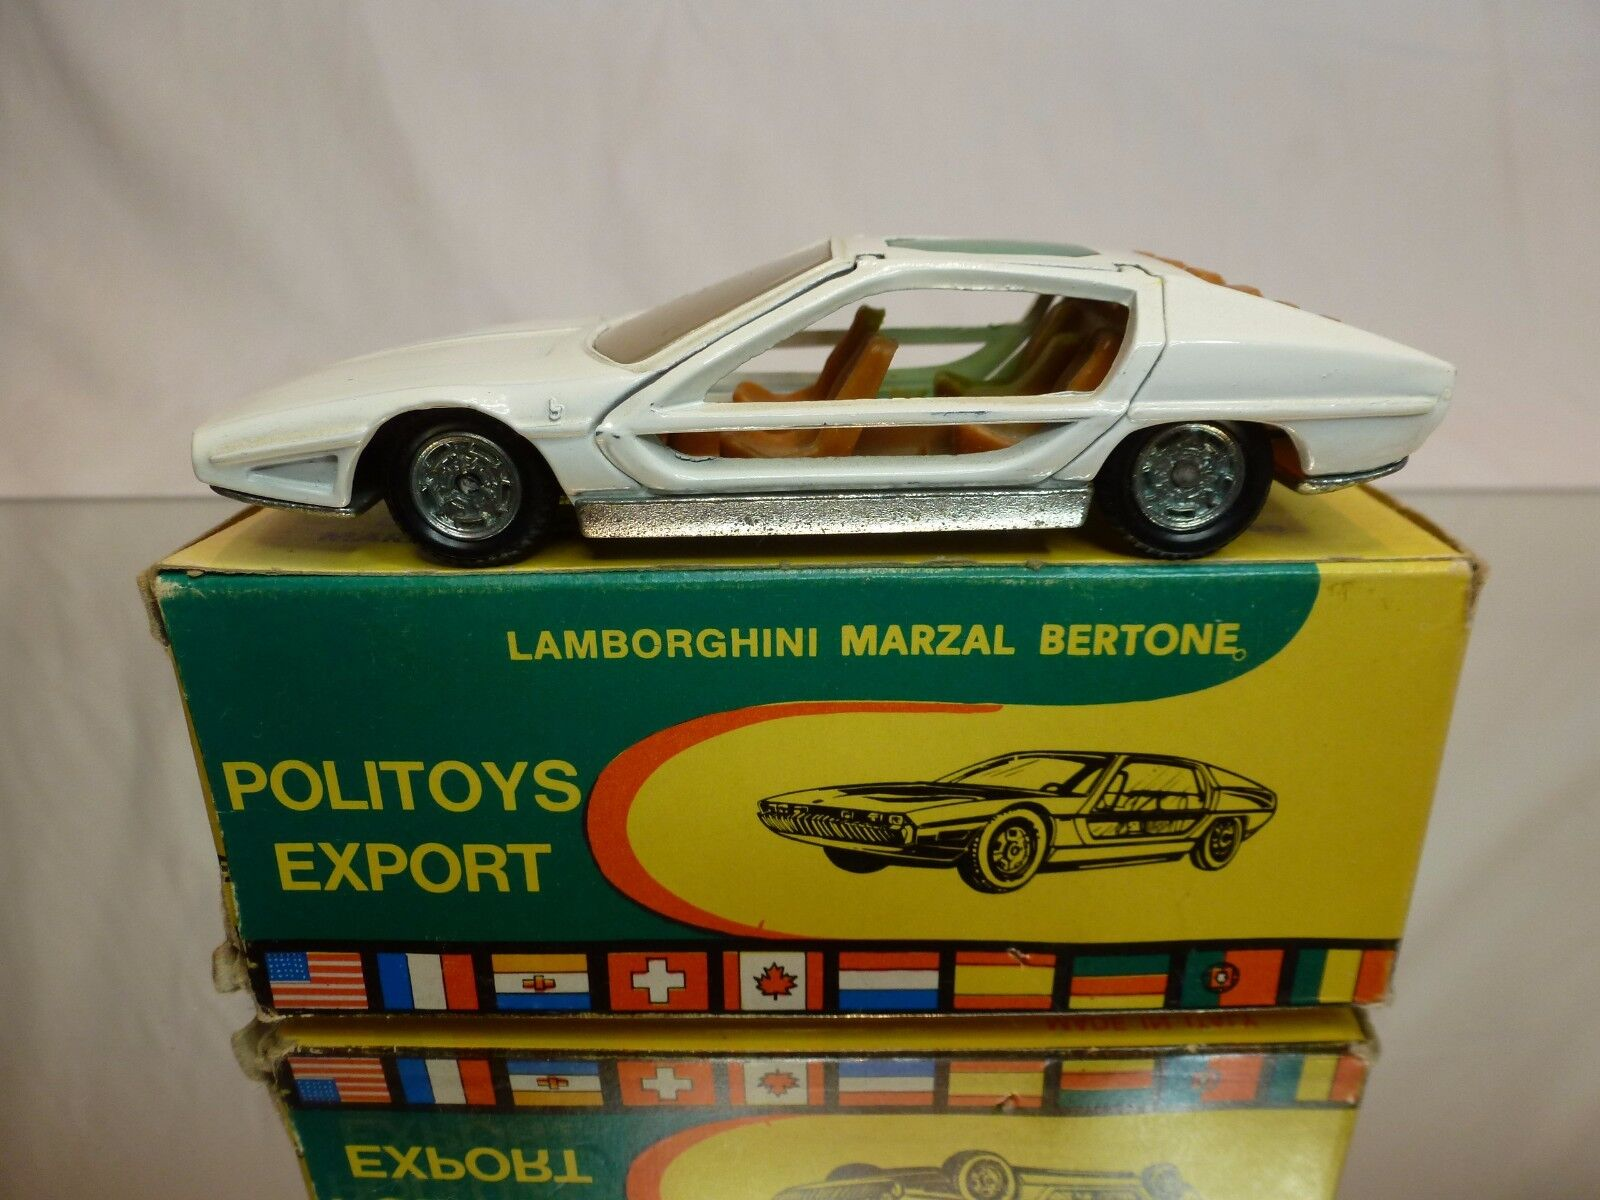 POLITOYS 568 LAMBORGHINI MARZAL BERTONE - OFF bianca 1 43 VERY RARE - GOOD IN BOX